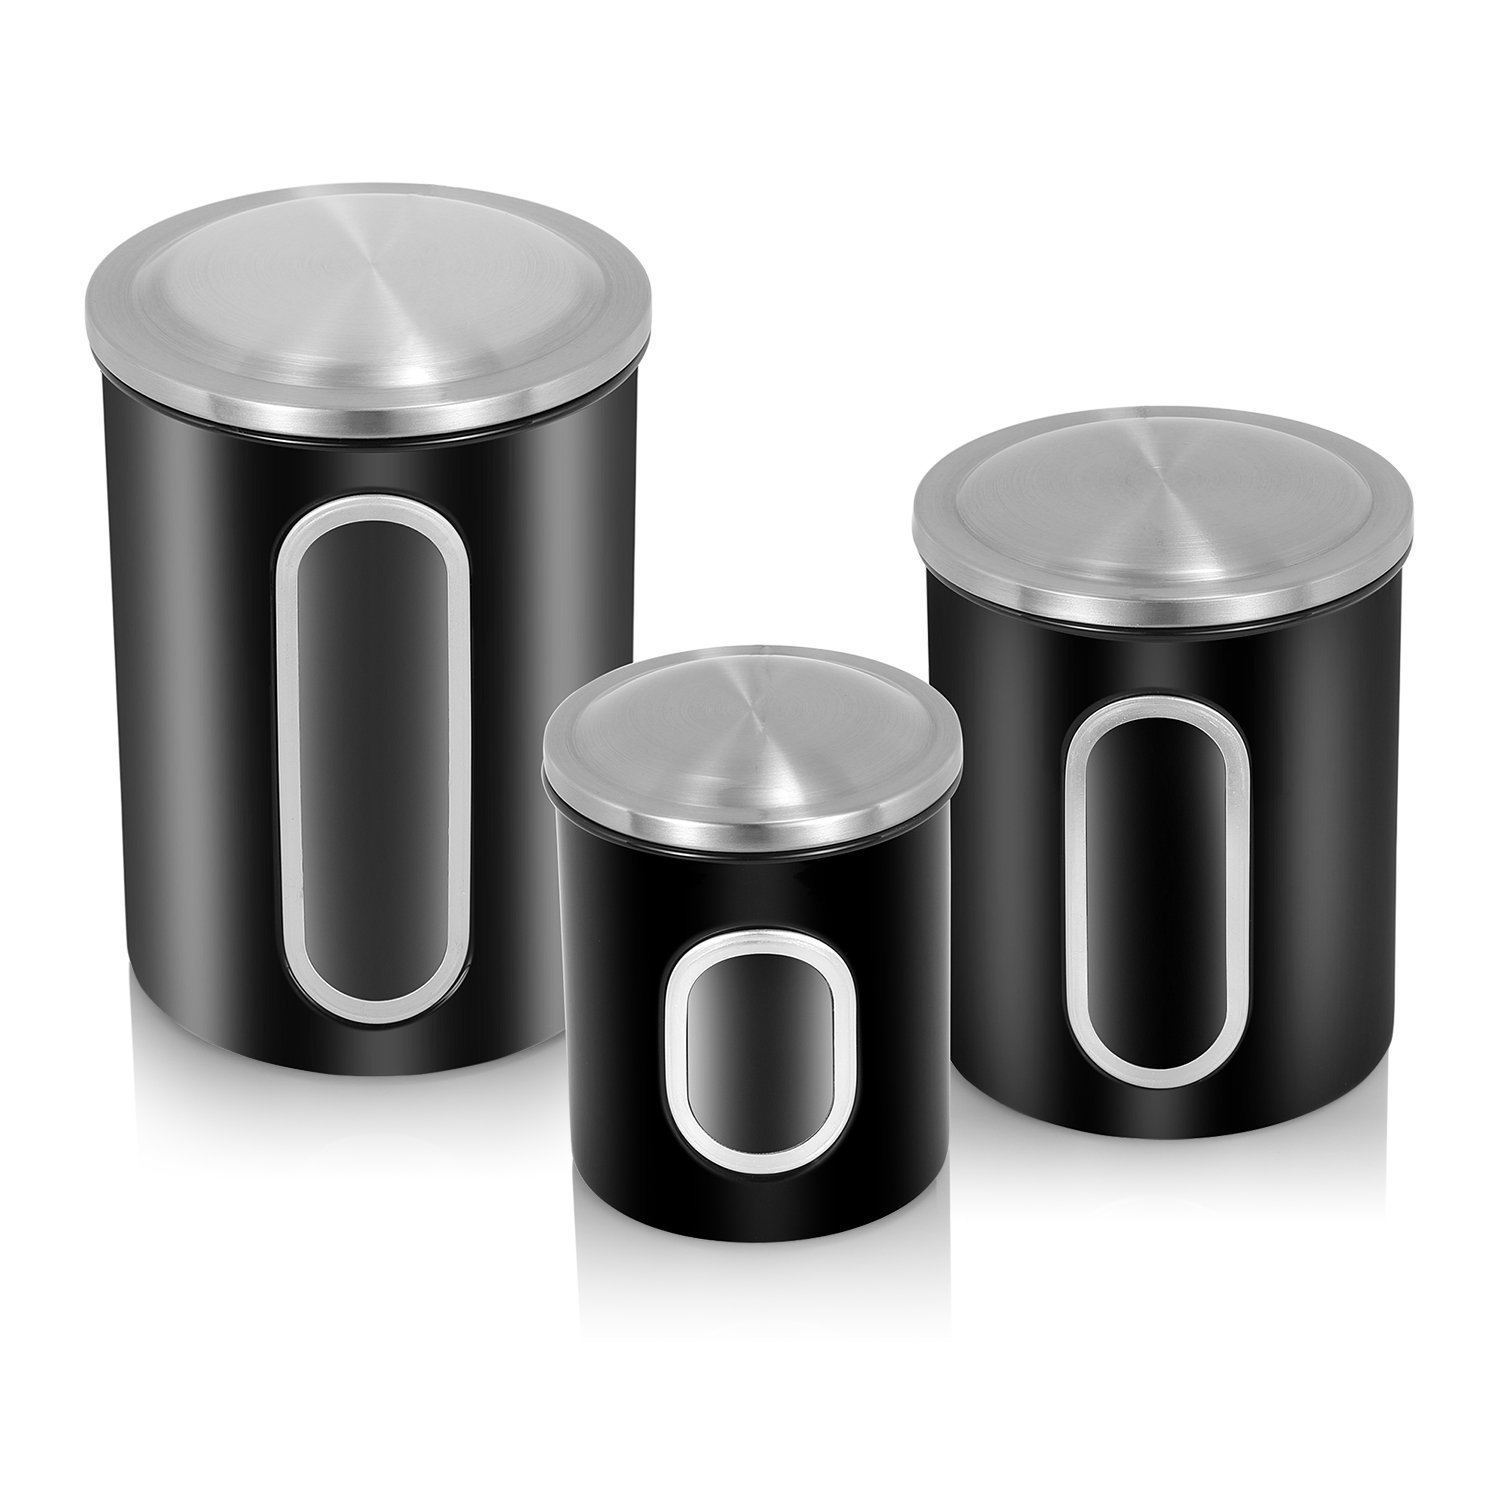 FC Stainless Steel Canister Sets with Anti-Fingerprint Lid and Visible Window, Cereal Container Set of 3 (Black)